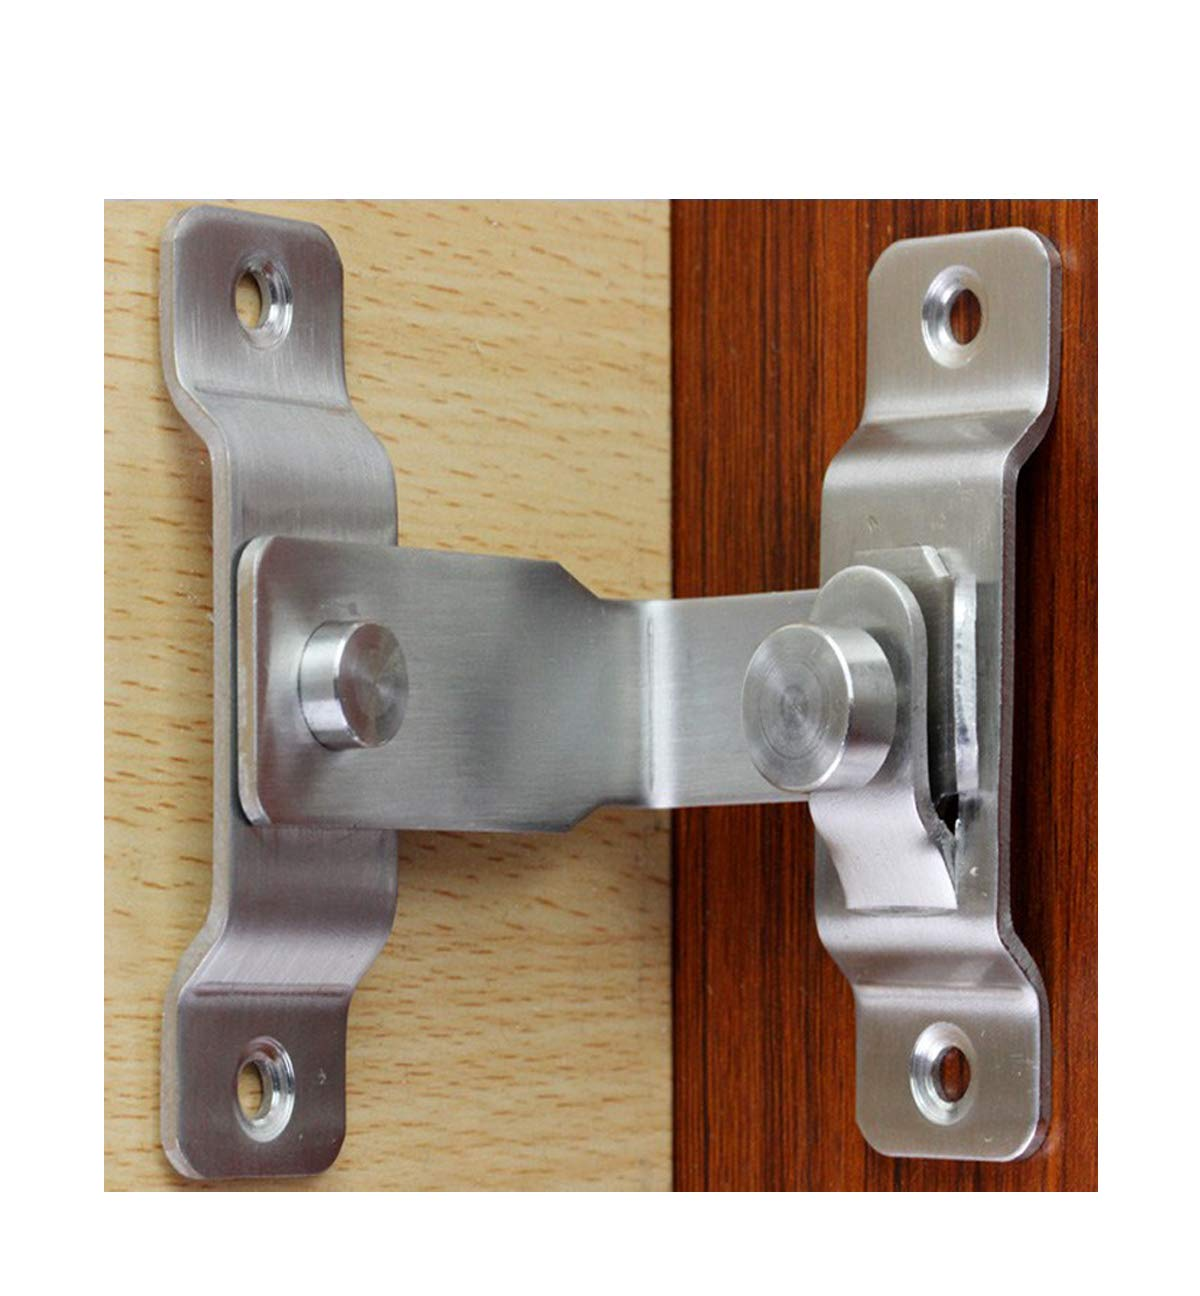 Large 90 degree right angle door latch buckle curved latch bolt bolt sliding lock bolt screw for door and window